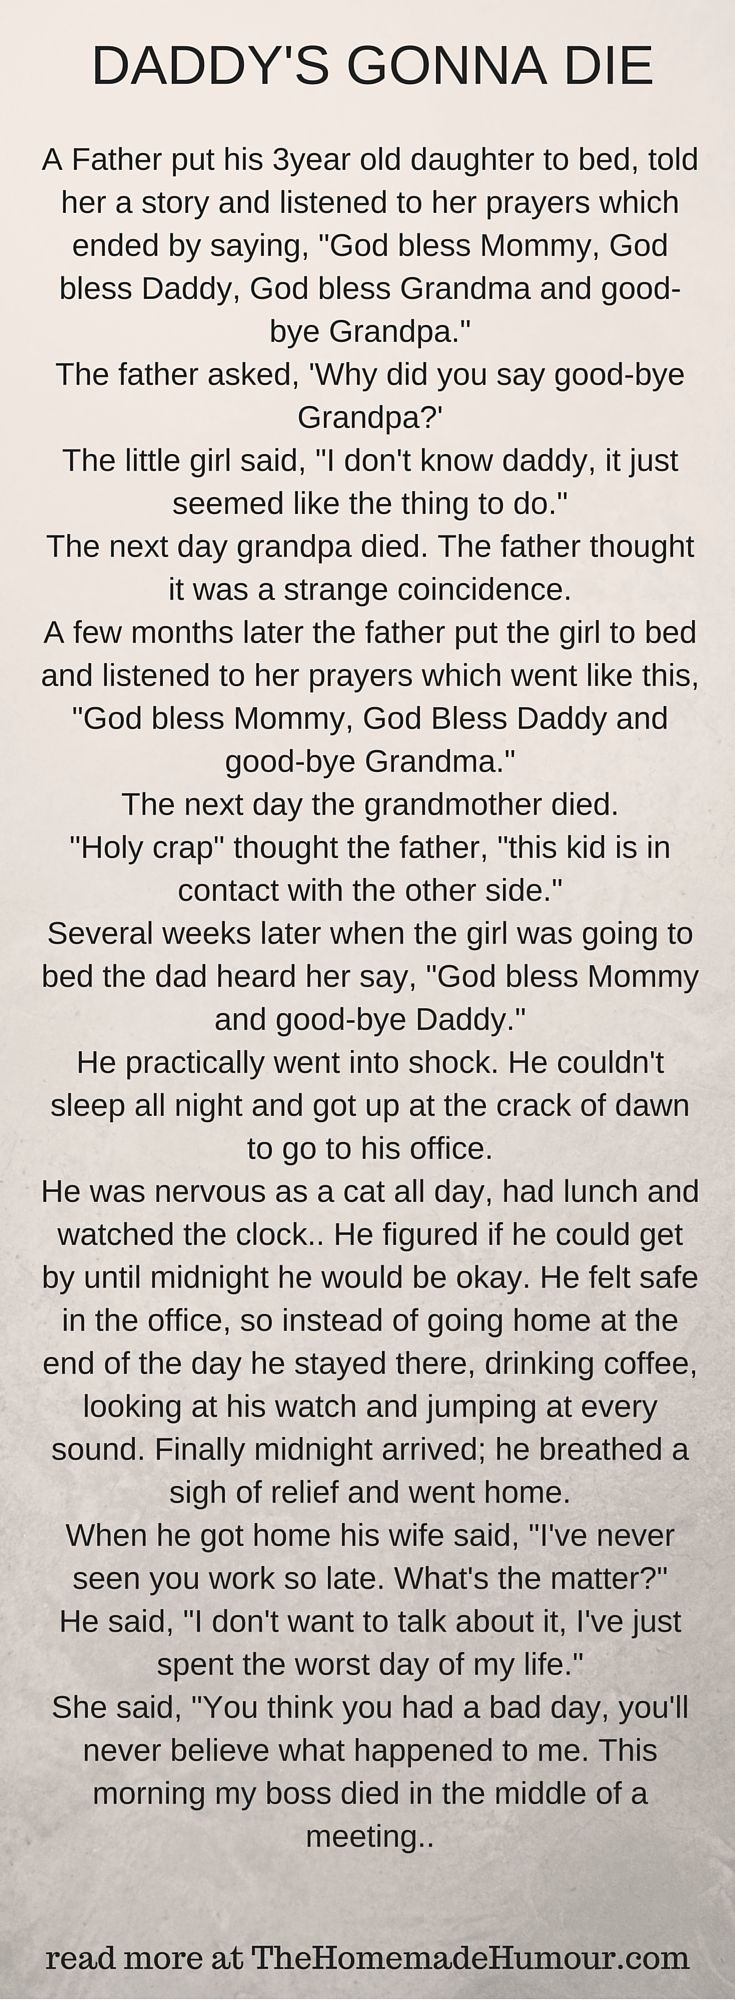 16 best images about Funny Stories on Pinterest   Funny ... - photo#17